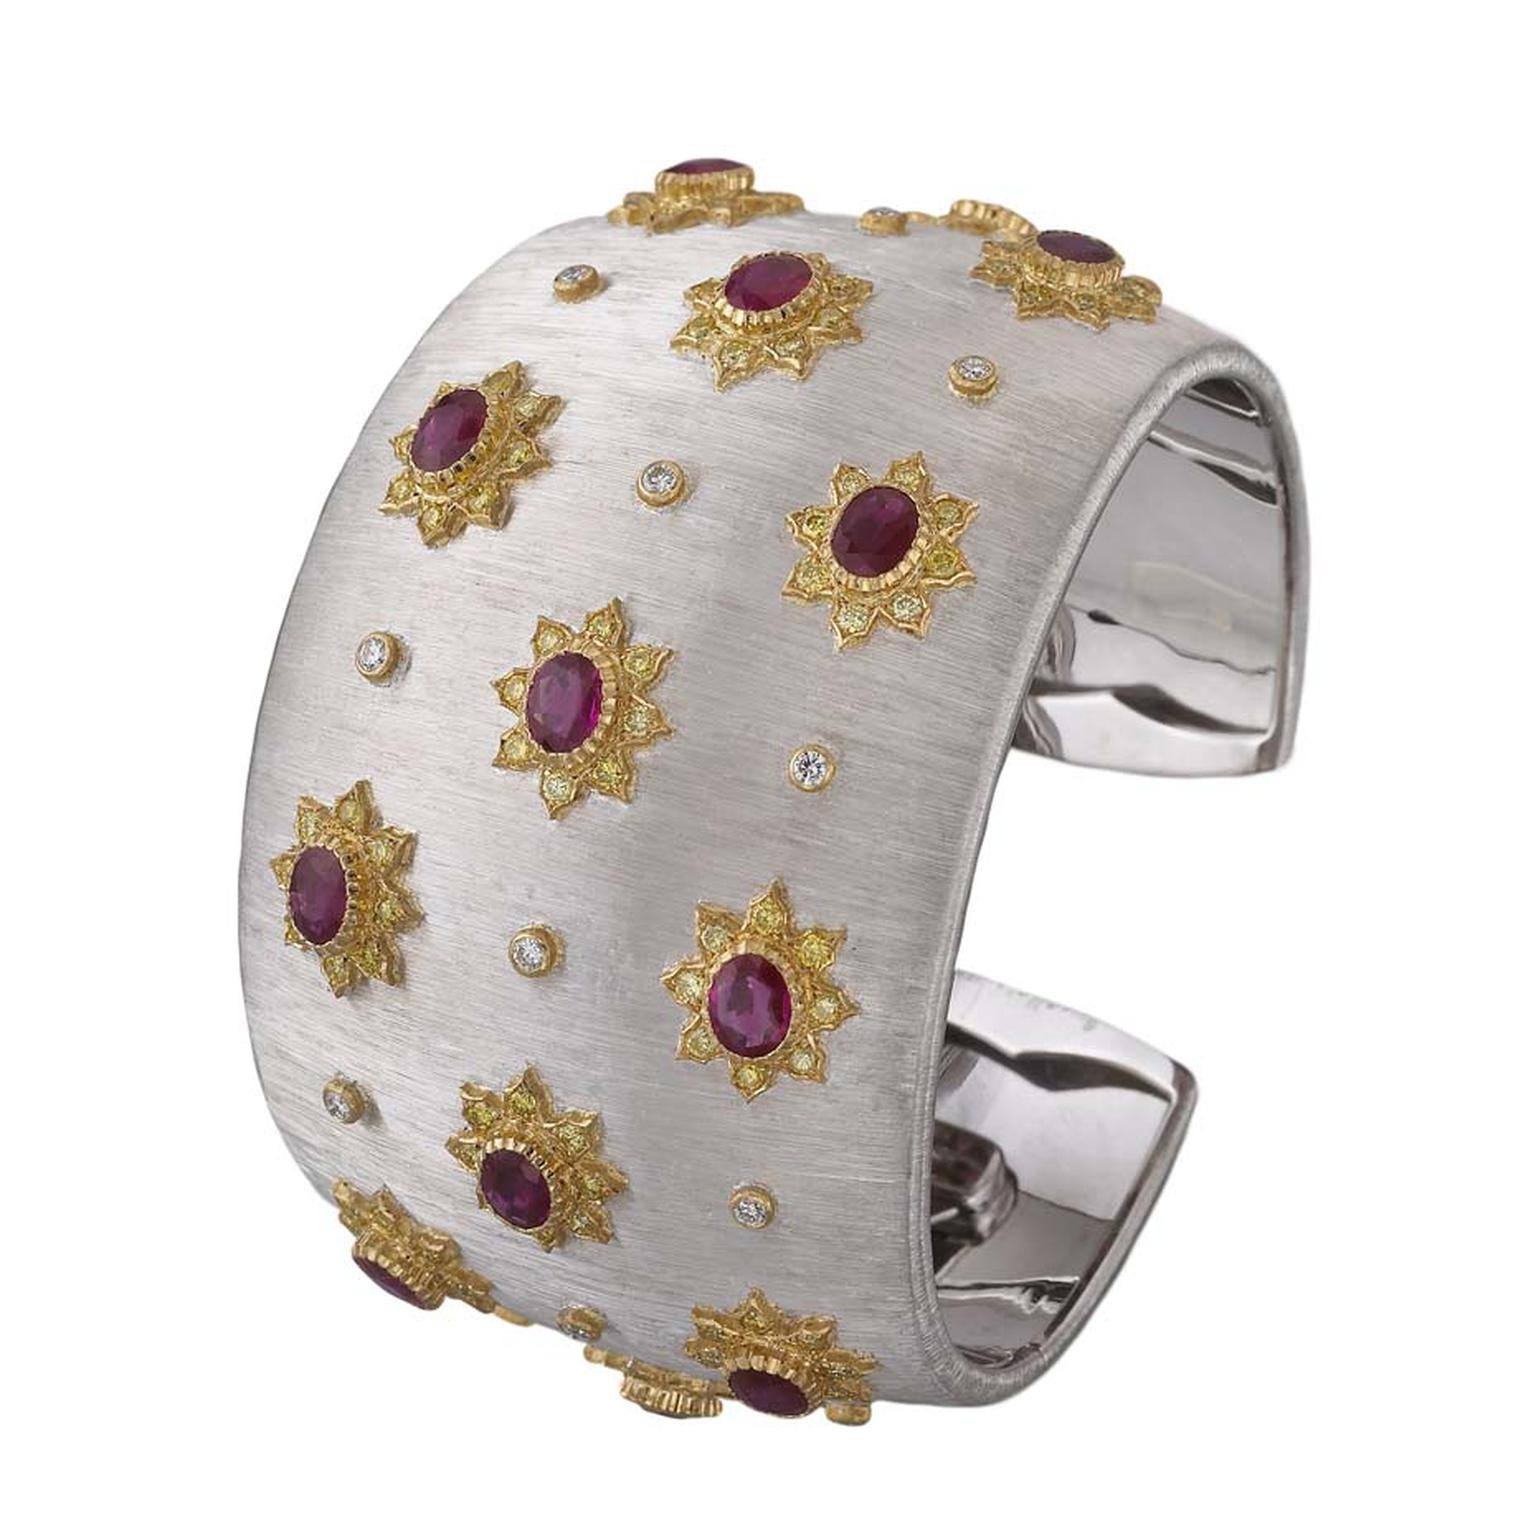 Buccellati Lastra cuff featuring brilliant and fancy cut diamonds and 7ct of oval rubies.